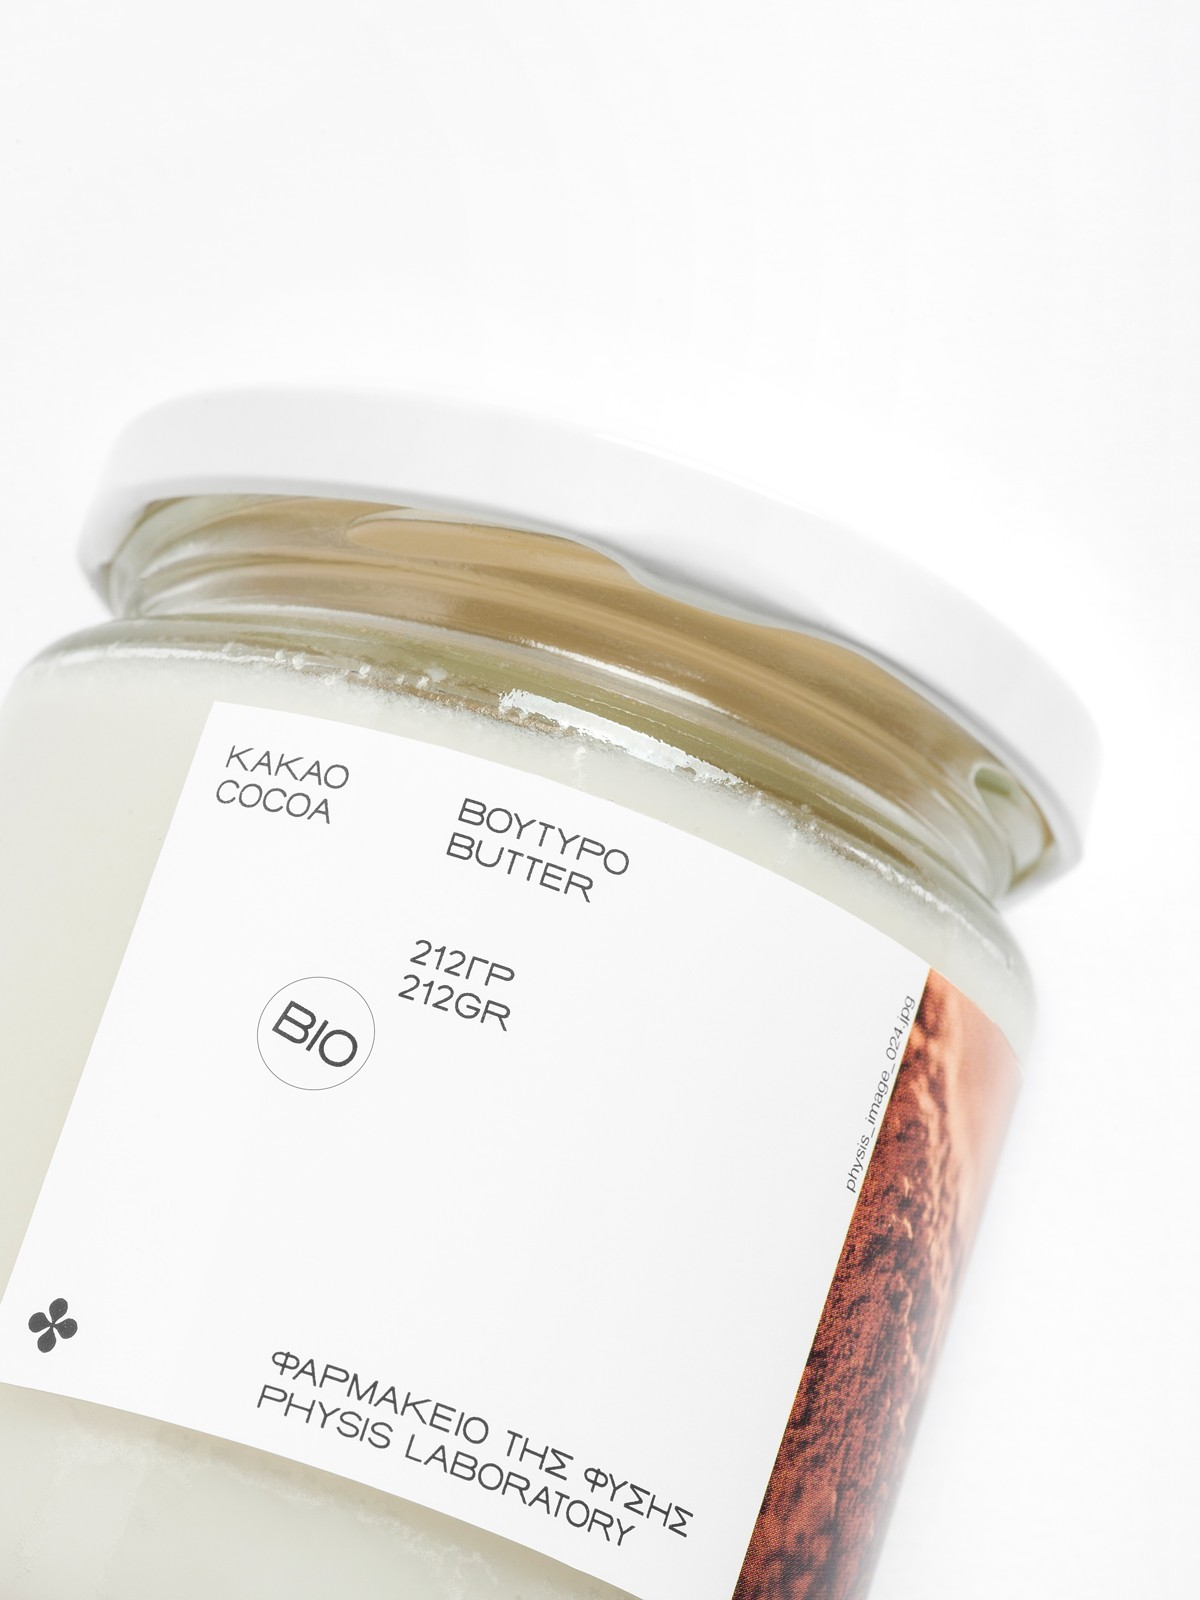 Cocoa butter—Theobroma Cacao Seed Butter